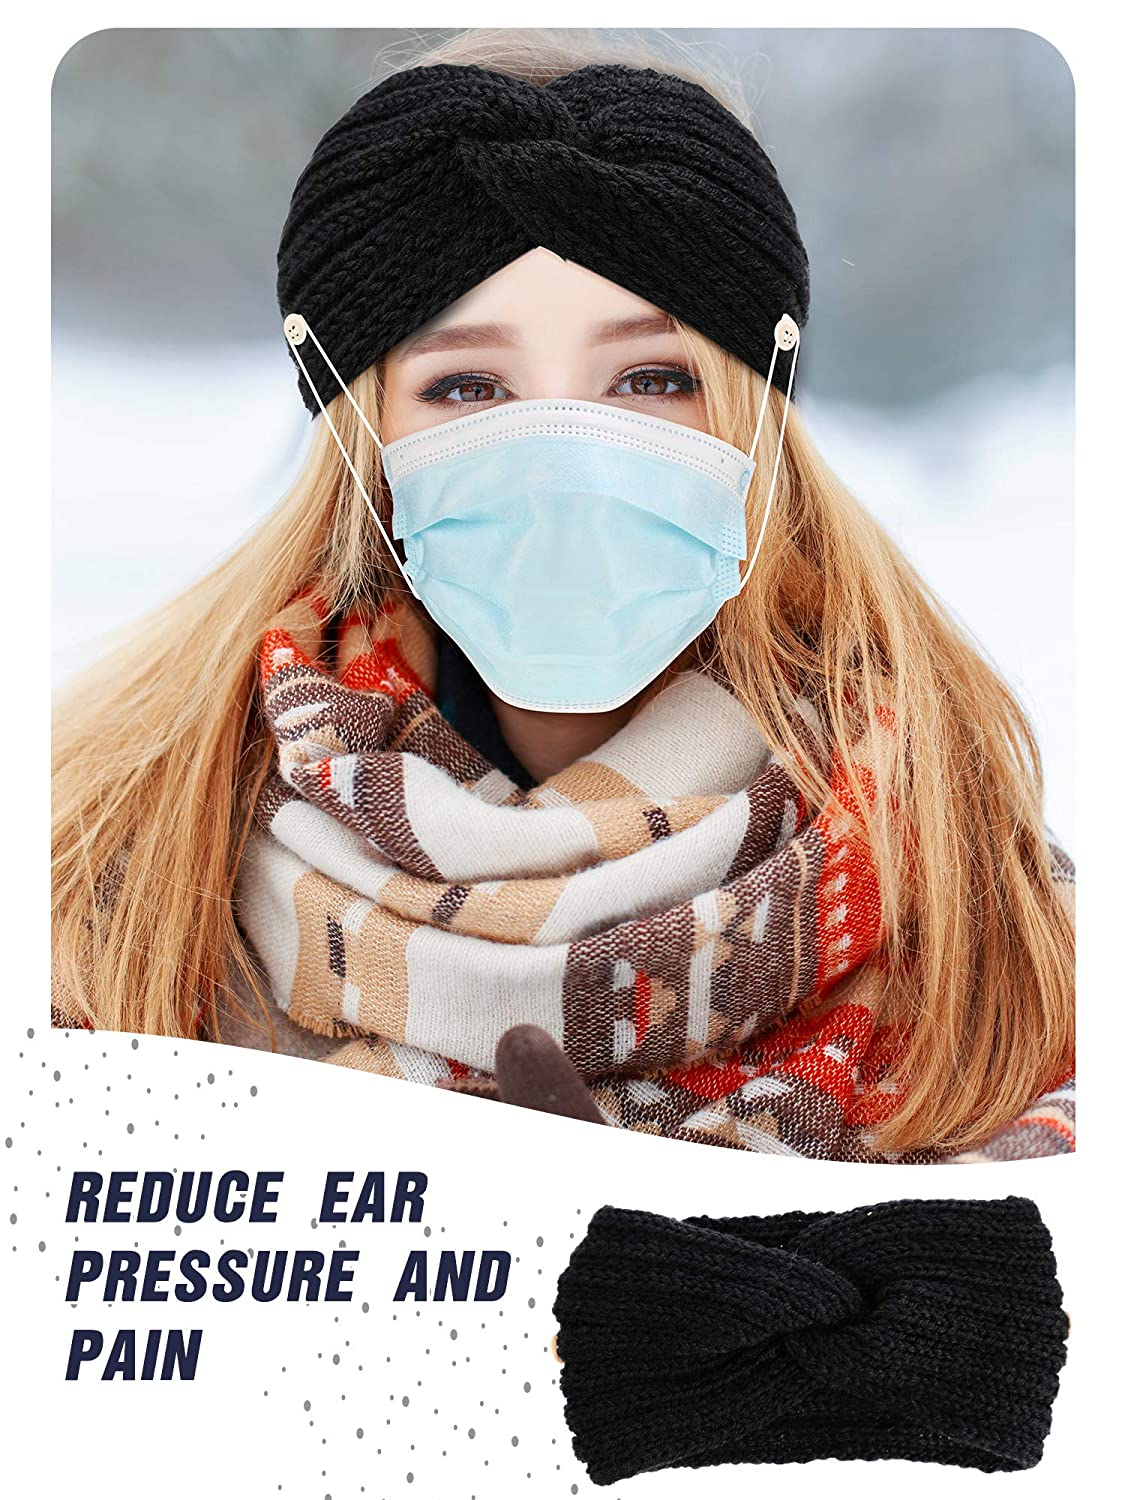 4 Pieces Winter Women Knit Ear Warmer Headbands with Button Knit Thick Warm Headband Cable Head Wrap Ear Muffs